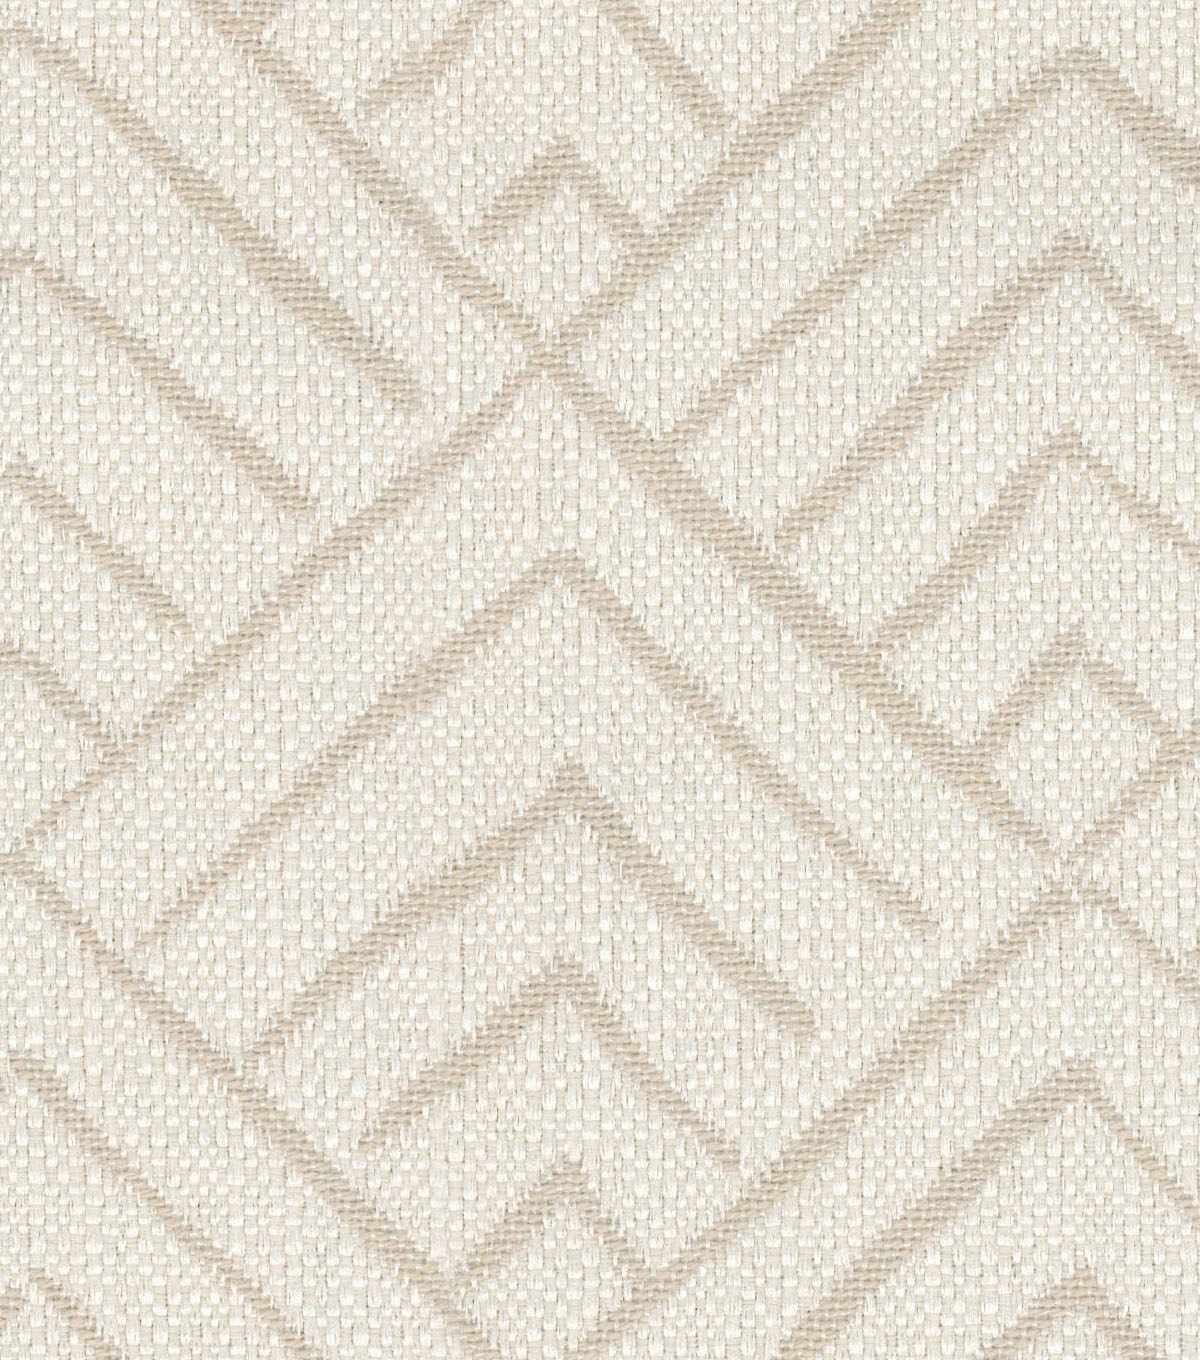 P/K Lifestyles Upholstery Fabric 13x13\u0022 Swatch-Tipping Point Sugarcane